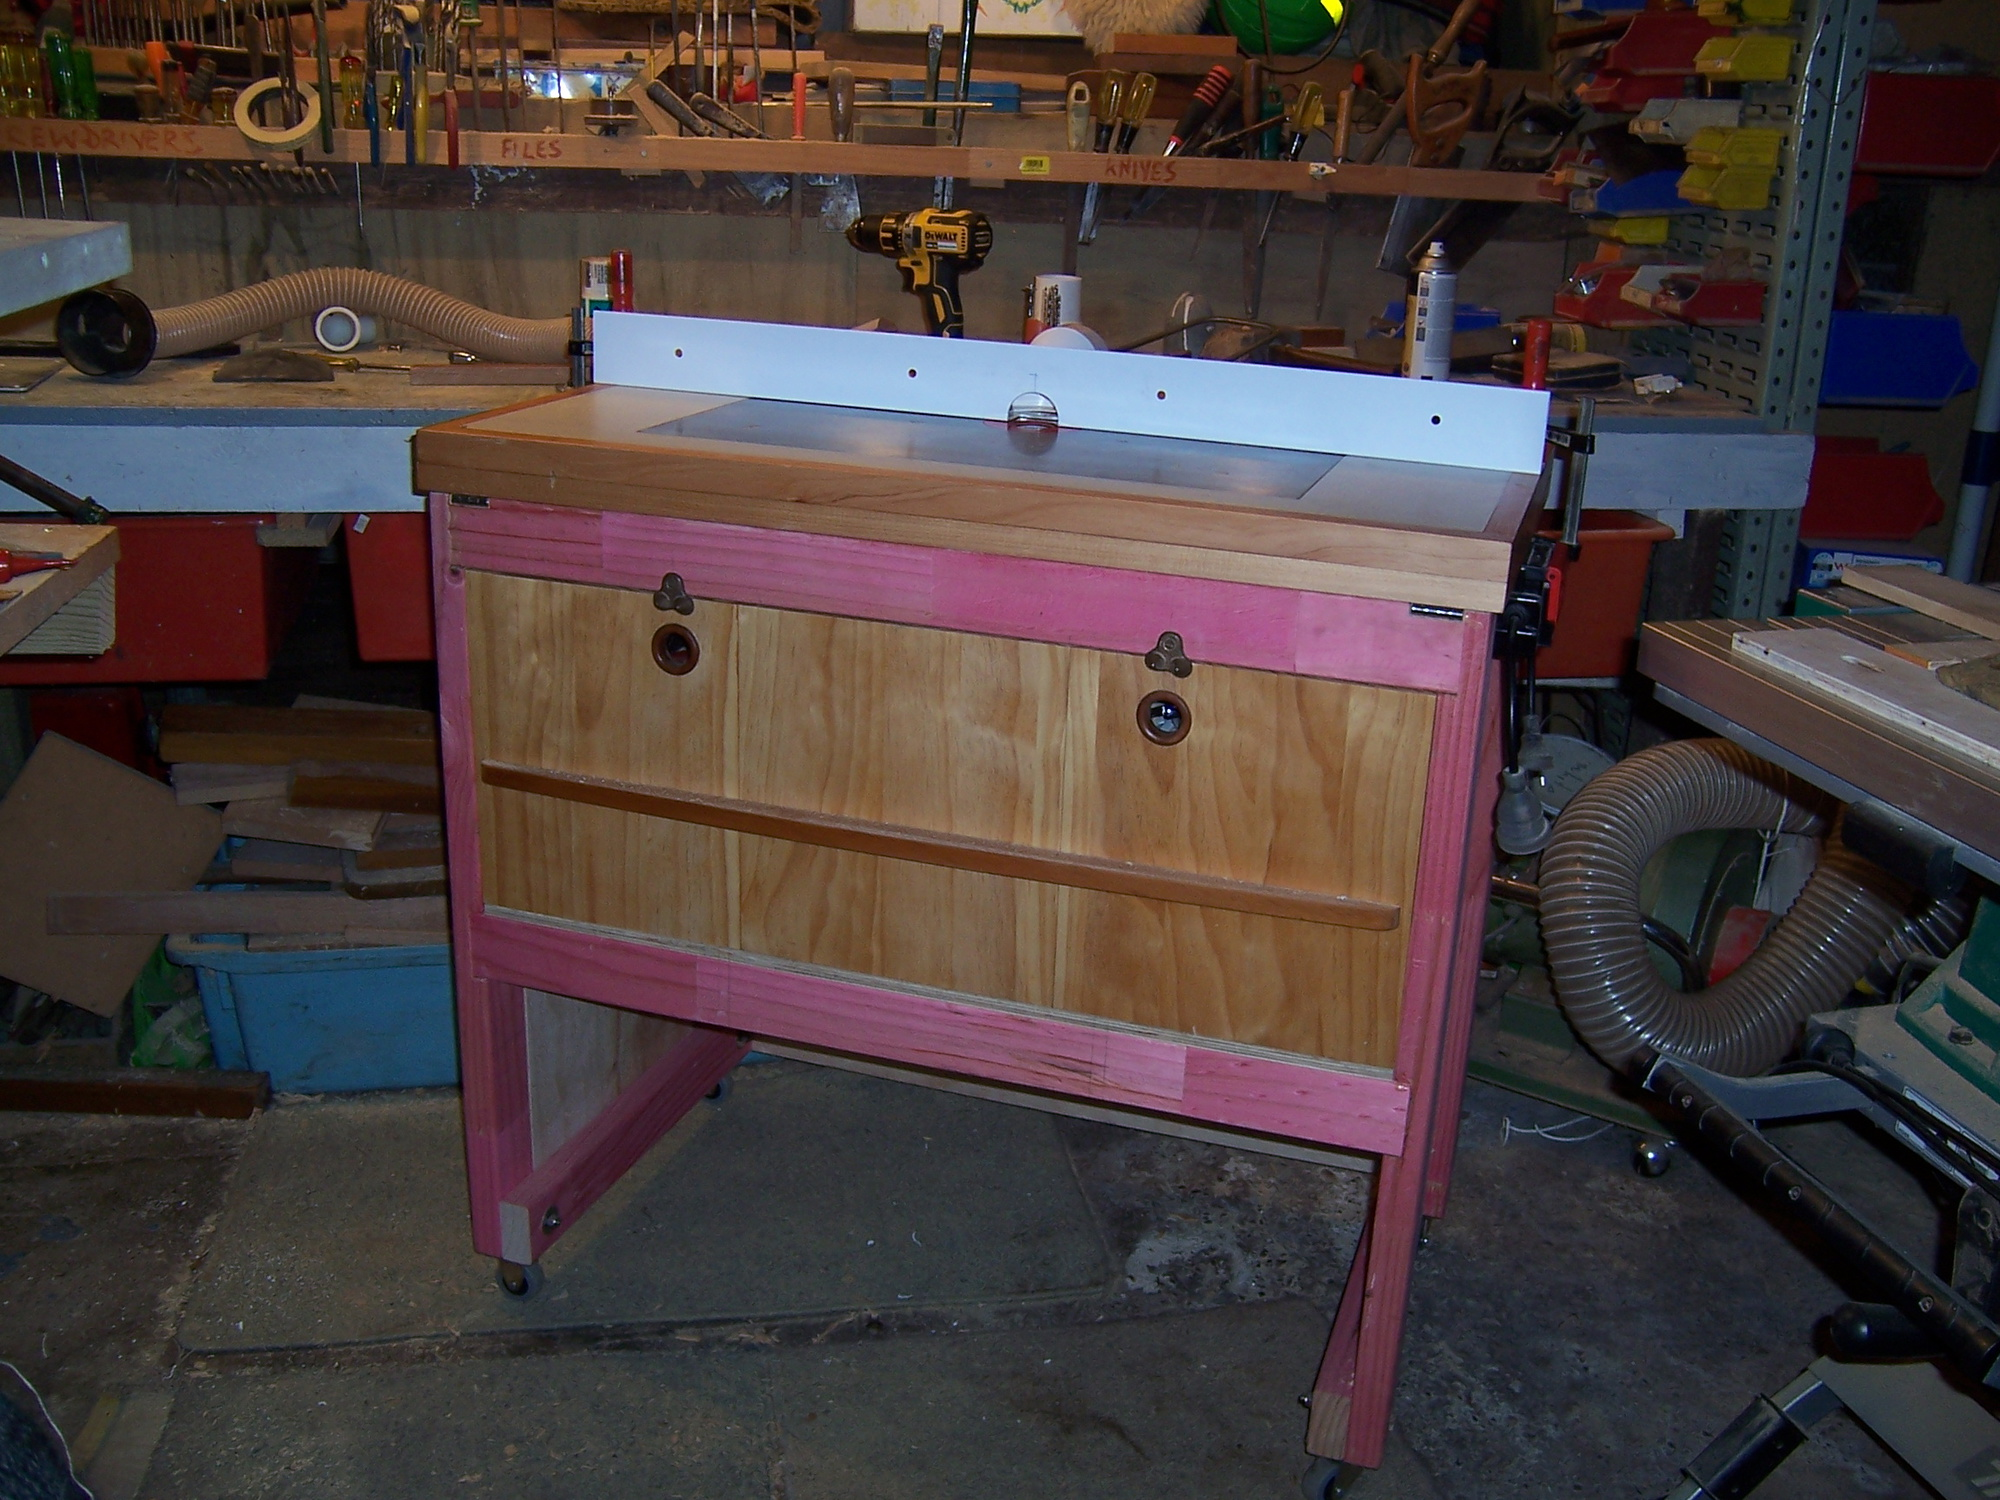 Expensive table tops page 3 router forums click image for larger version name router table with front in placeg views greentooth Images